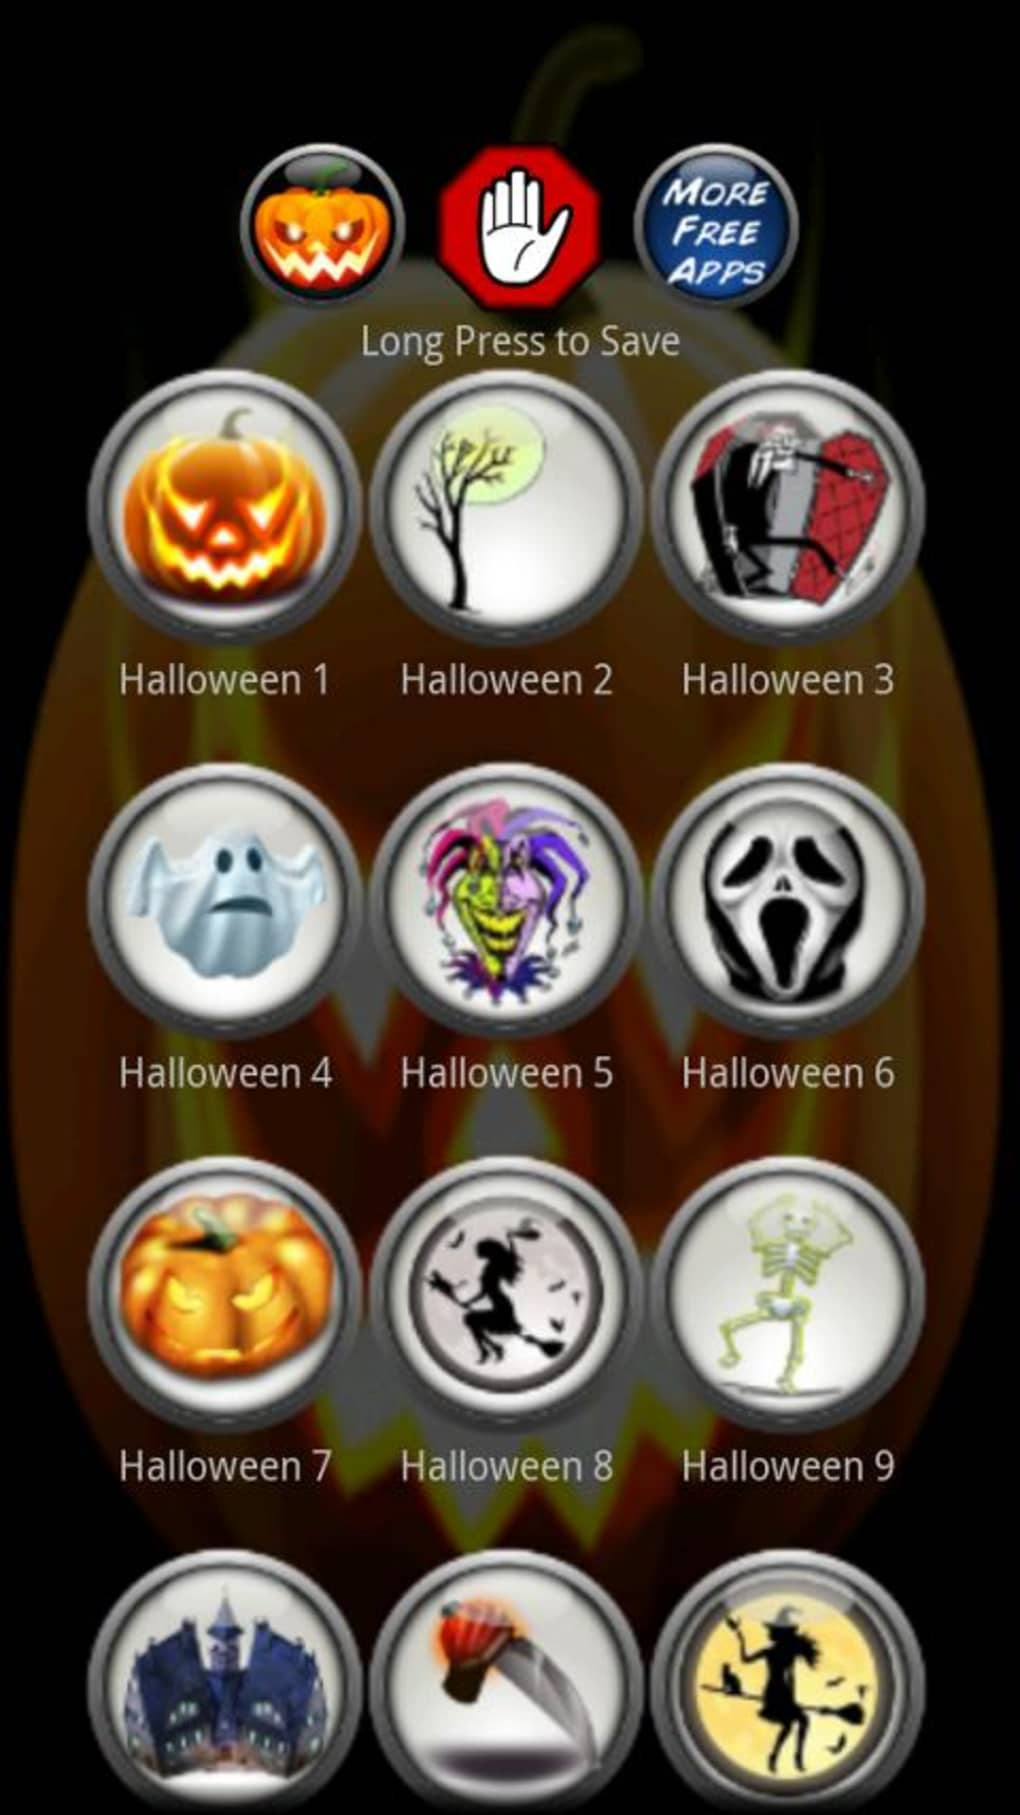 halloween theme ringtone free download for iphone